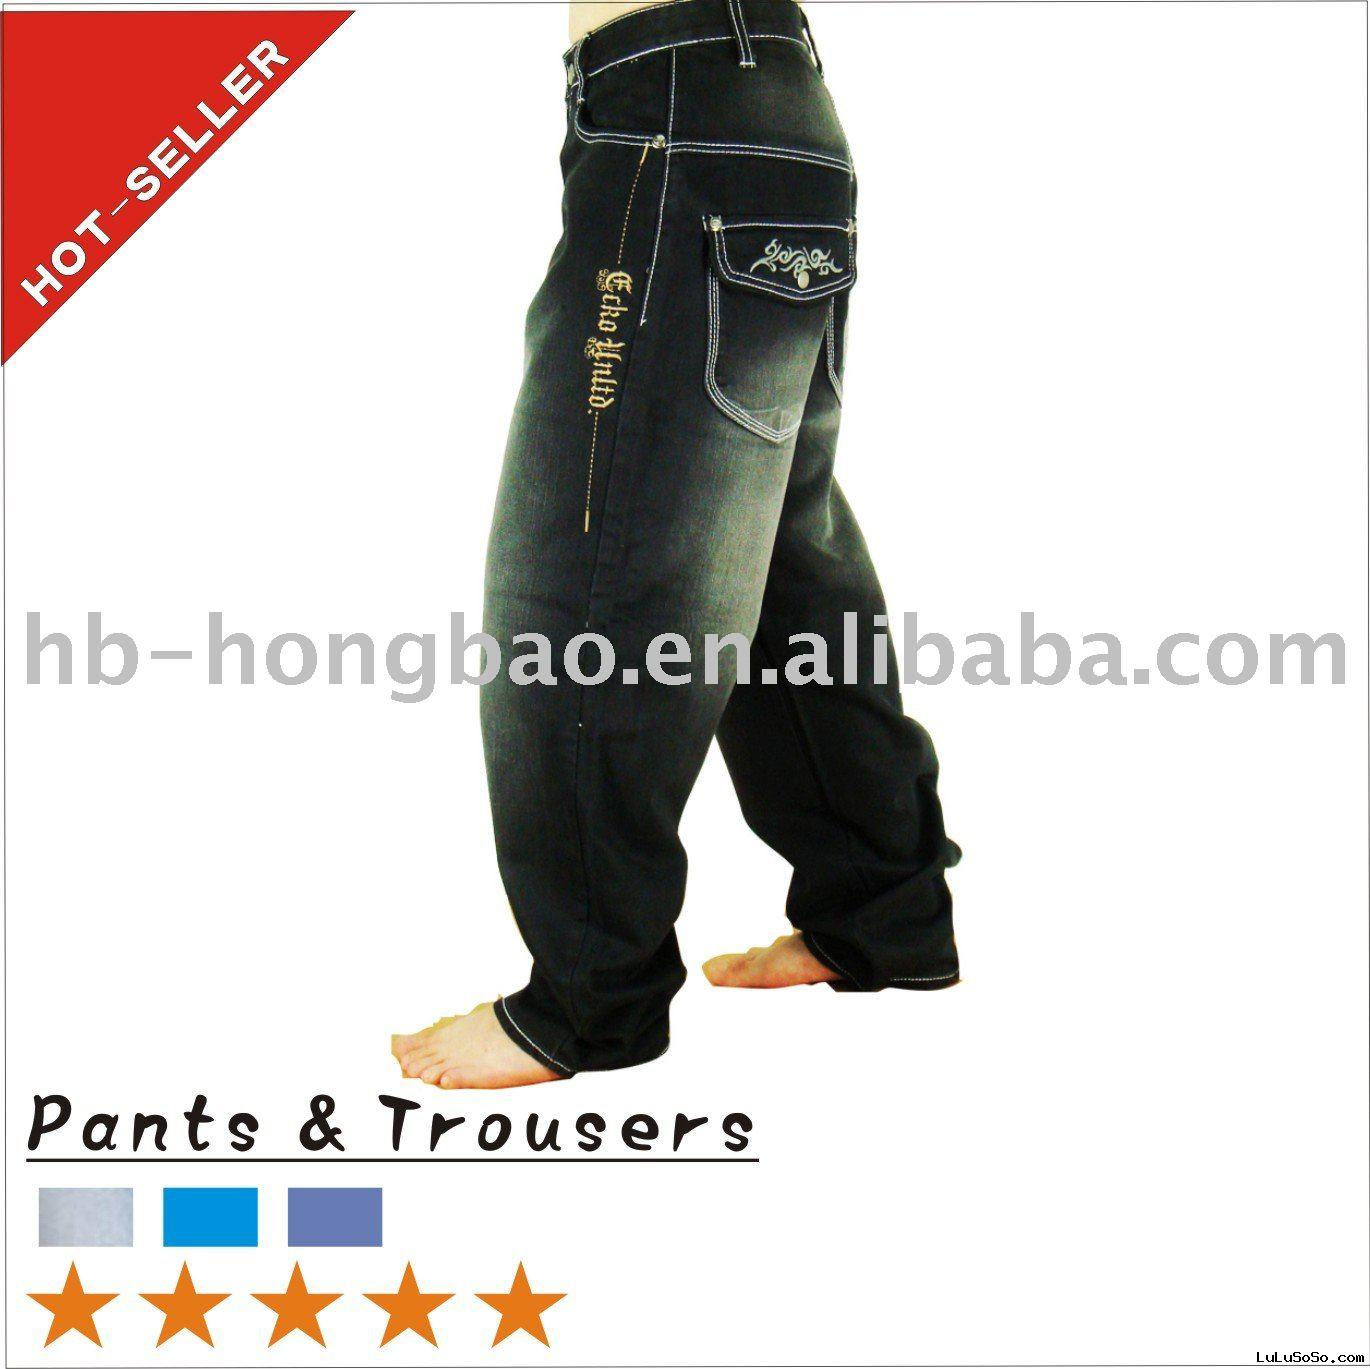 34'' Inseam Embroidery Pocket Design Mens Pants